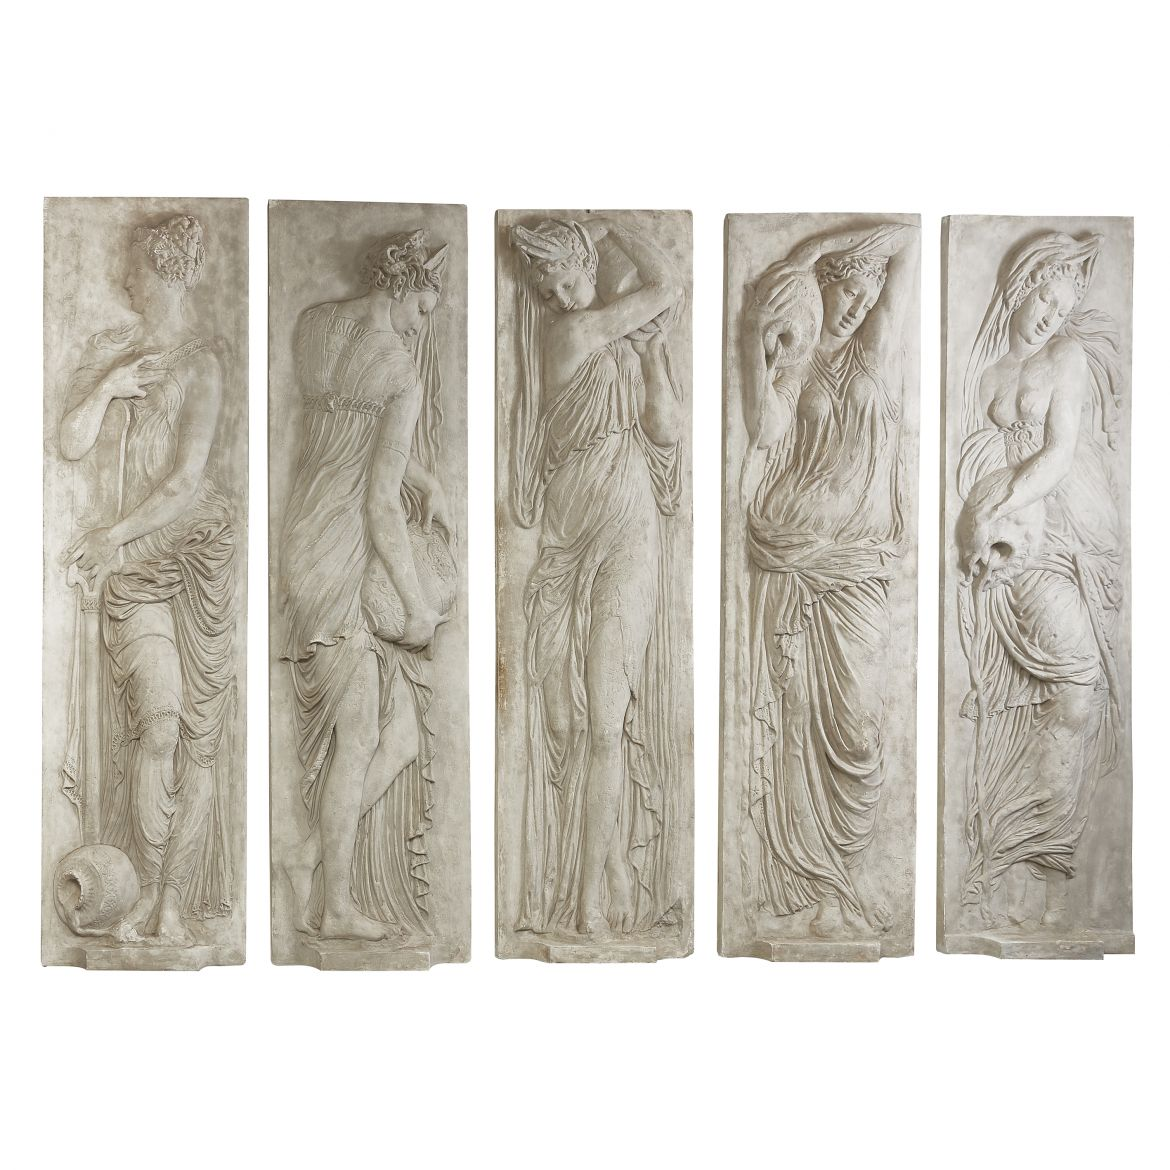 Five Plaster Relief Panels of Nymphs